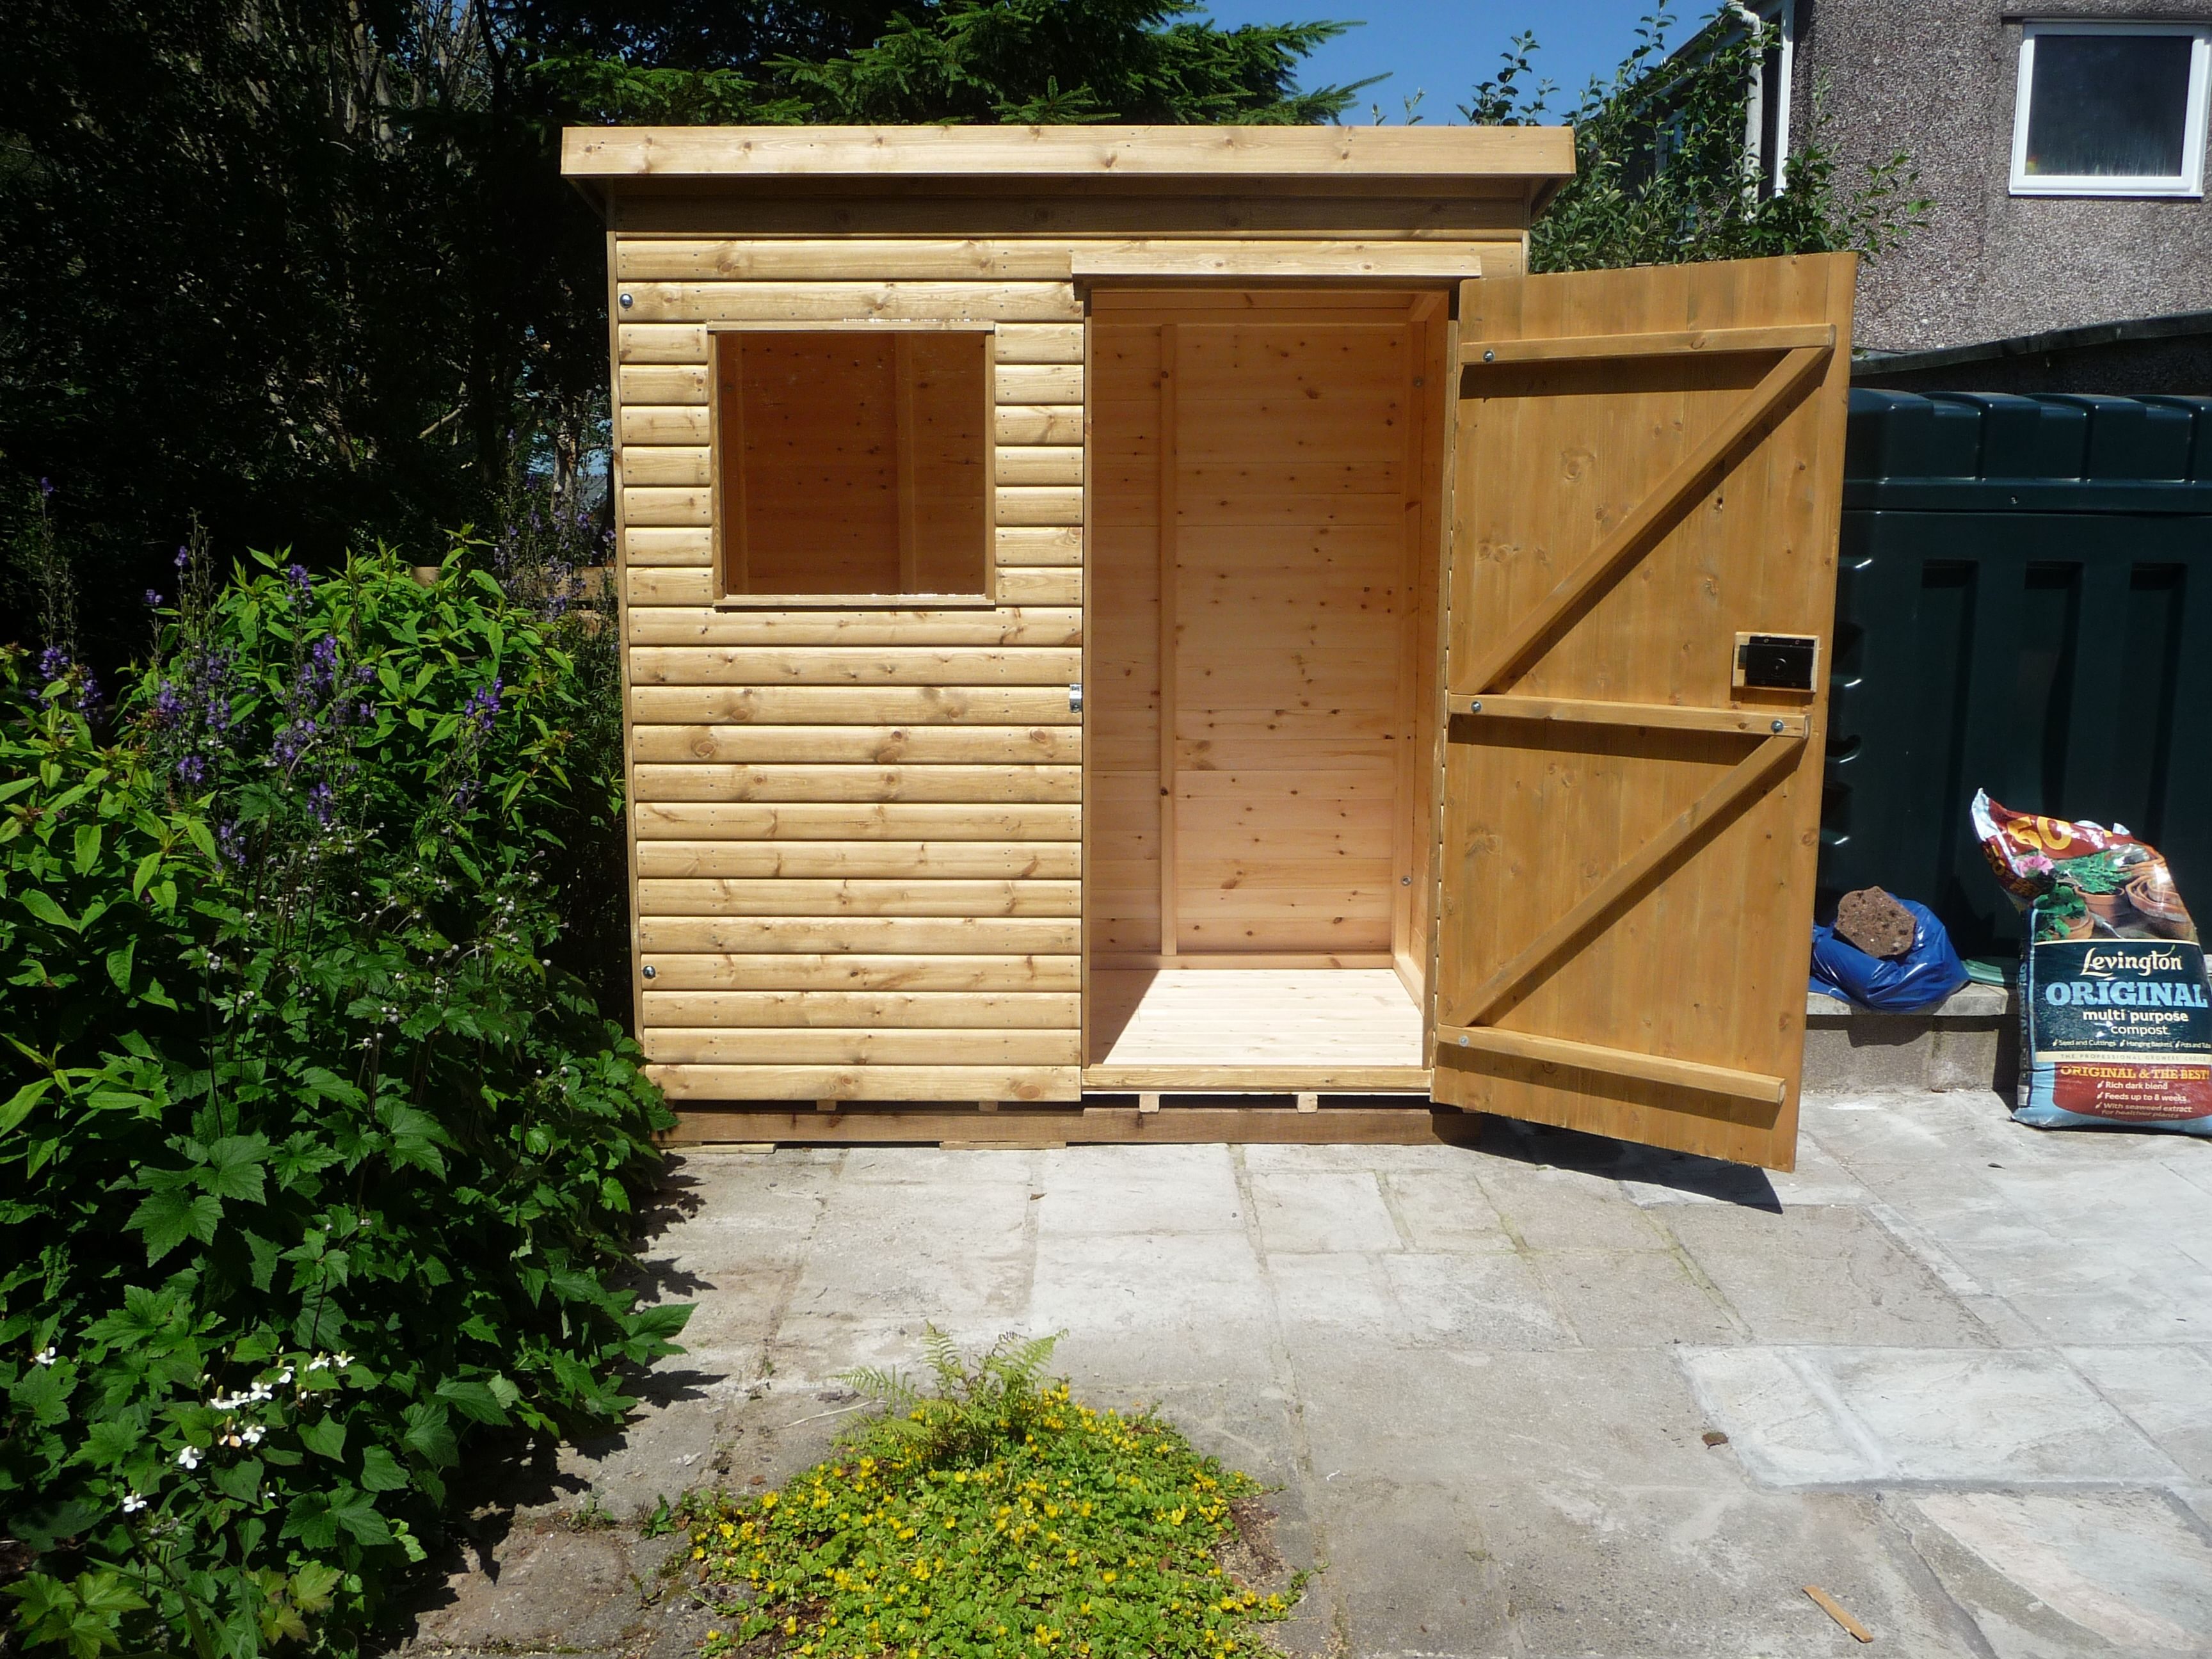 6ft x 4ft garden shed with pent roof great storage area for tools bbq - Garden Sheds 6ft By 4ft